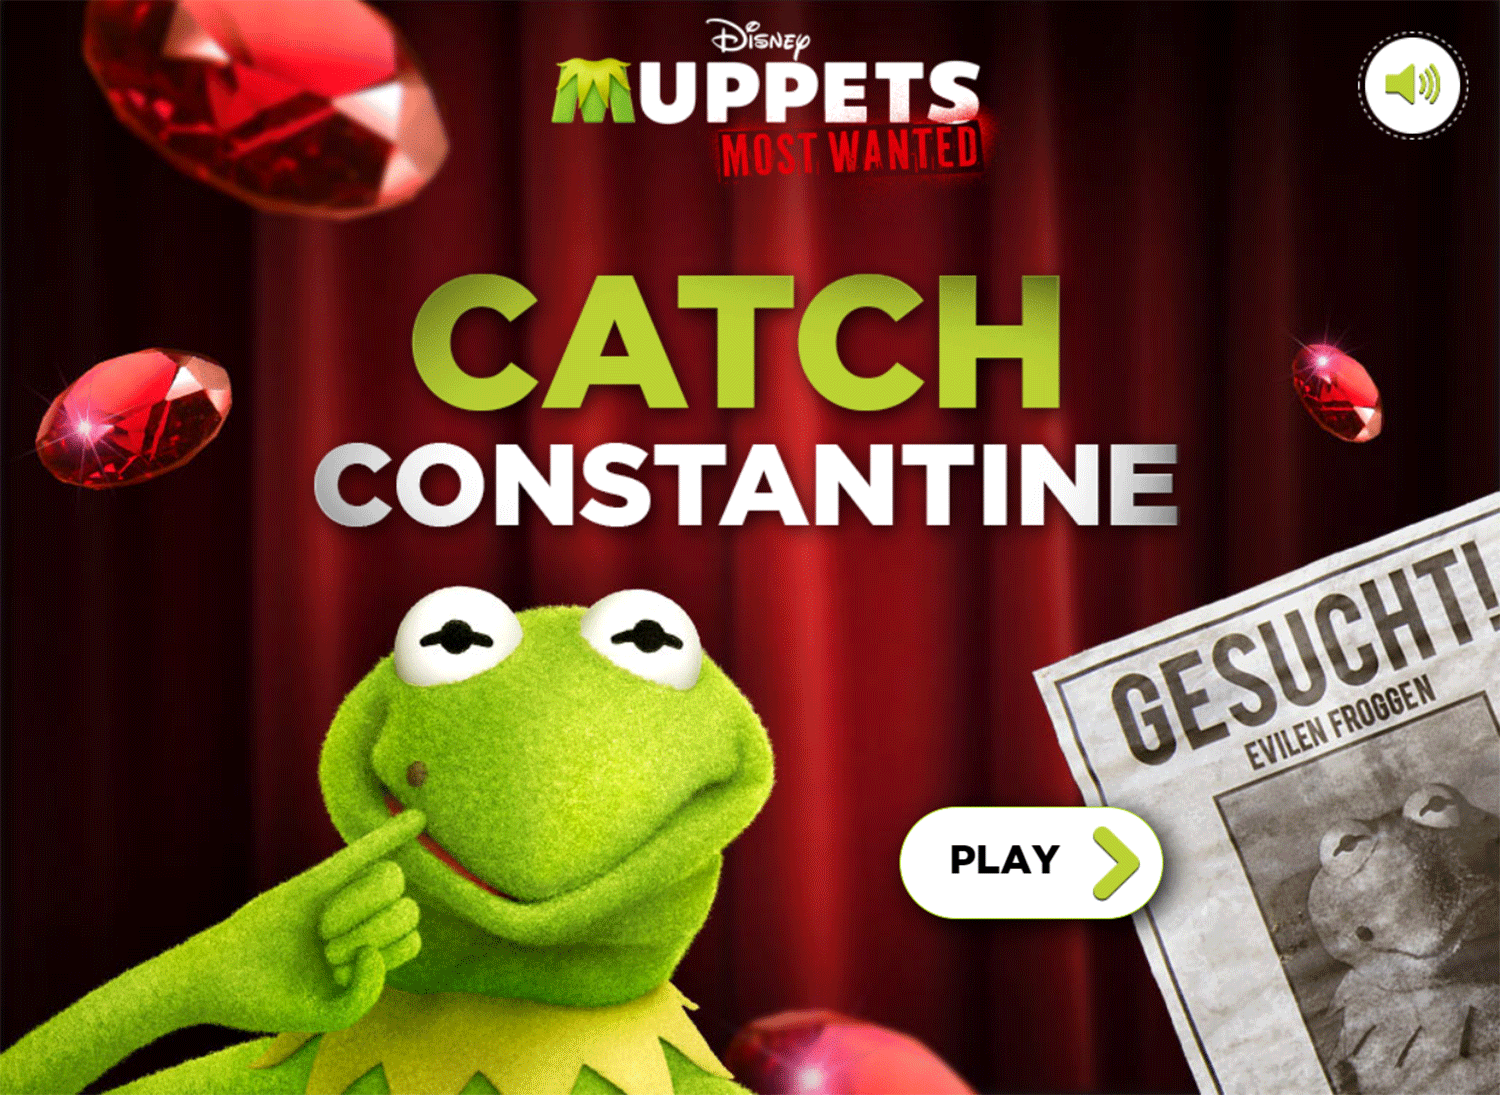 Muppets Most Wanted Catch Constantine Game Welcome Screen Screenshot.